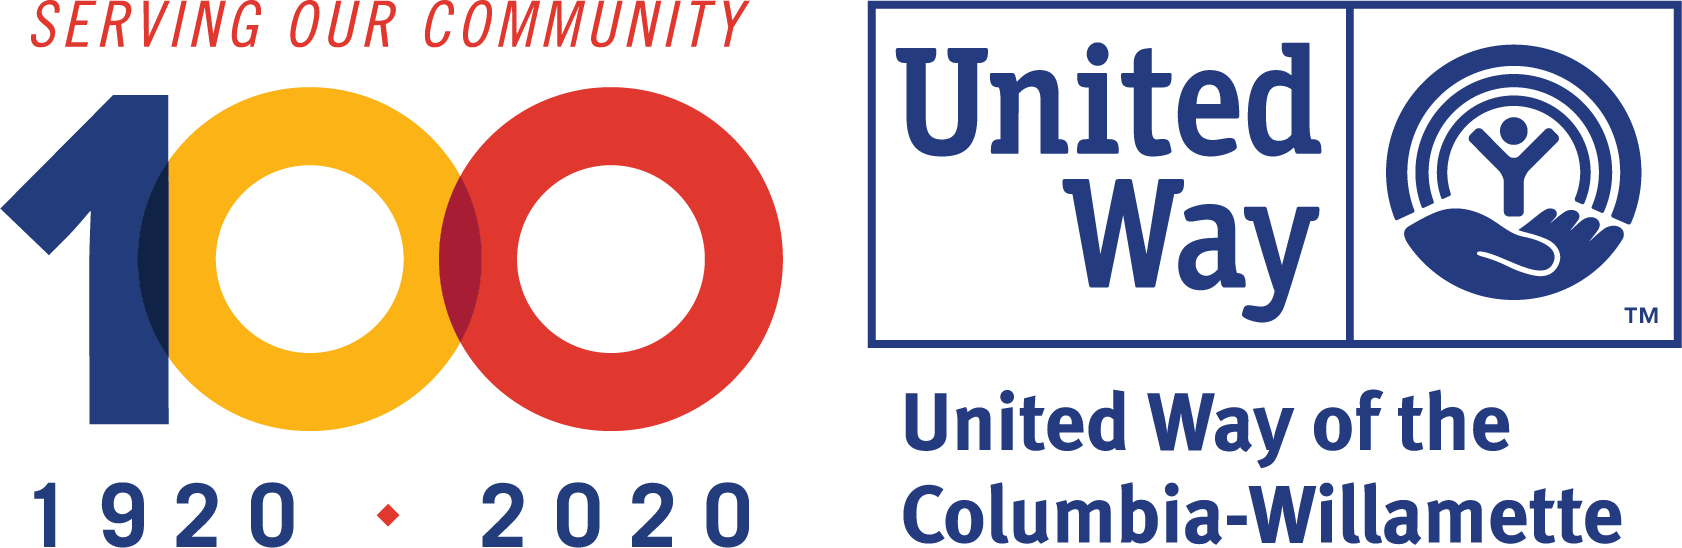 united way of the columbia willamette logo